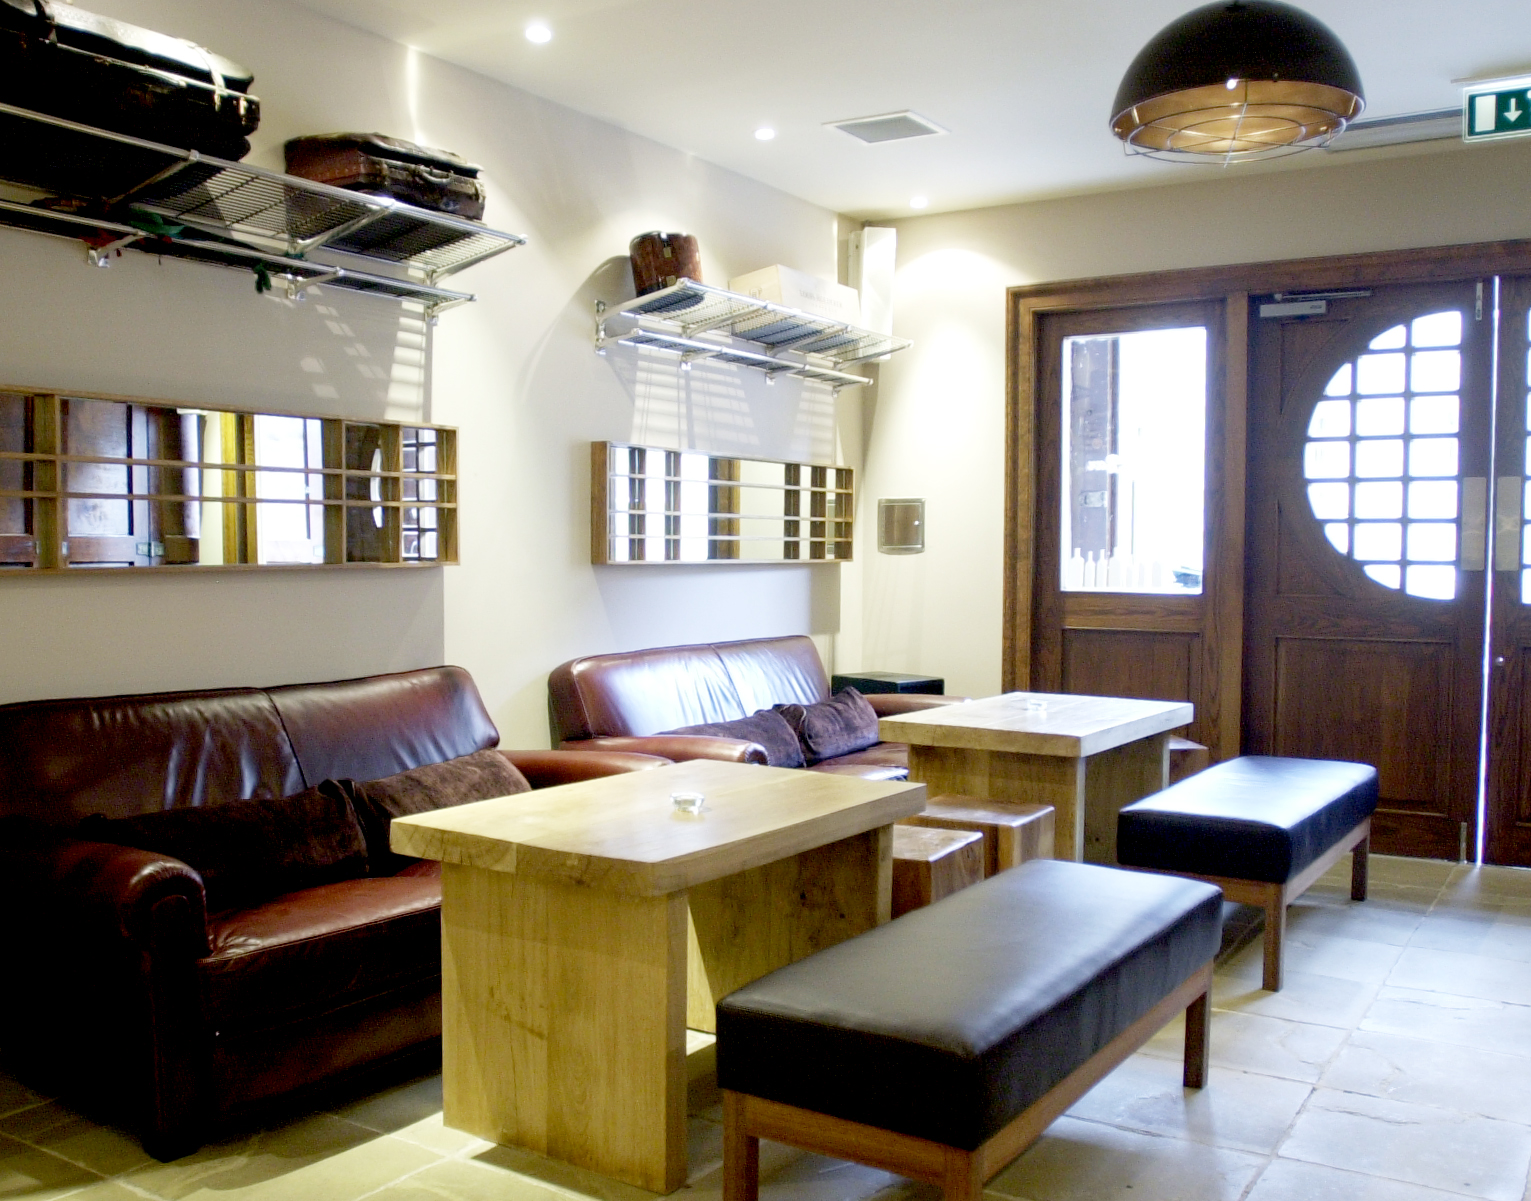 Gastro Design Gastro Pub Bretton Studios Interior Design In Yorkshire And